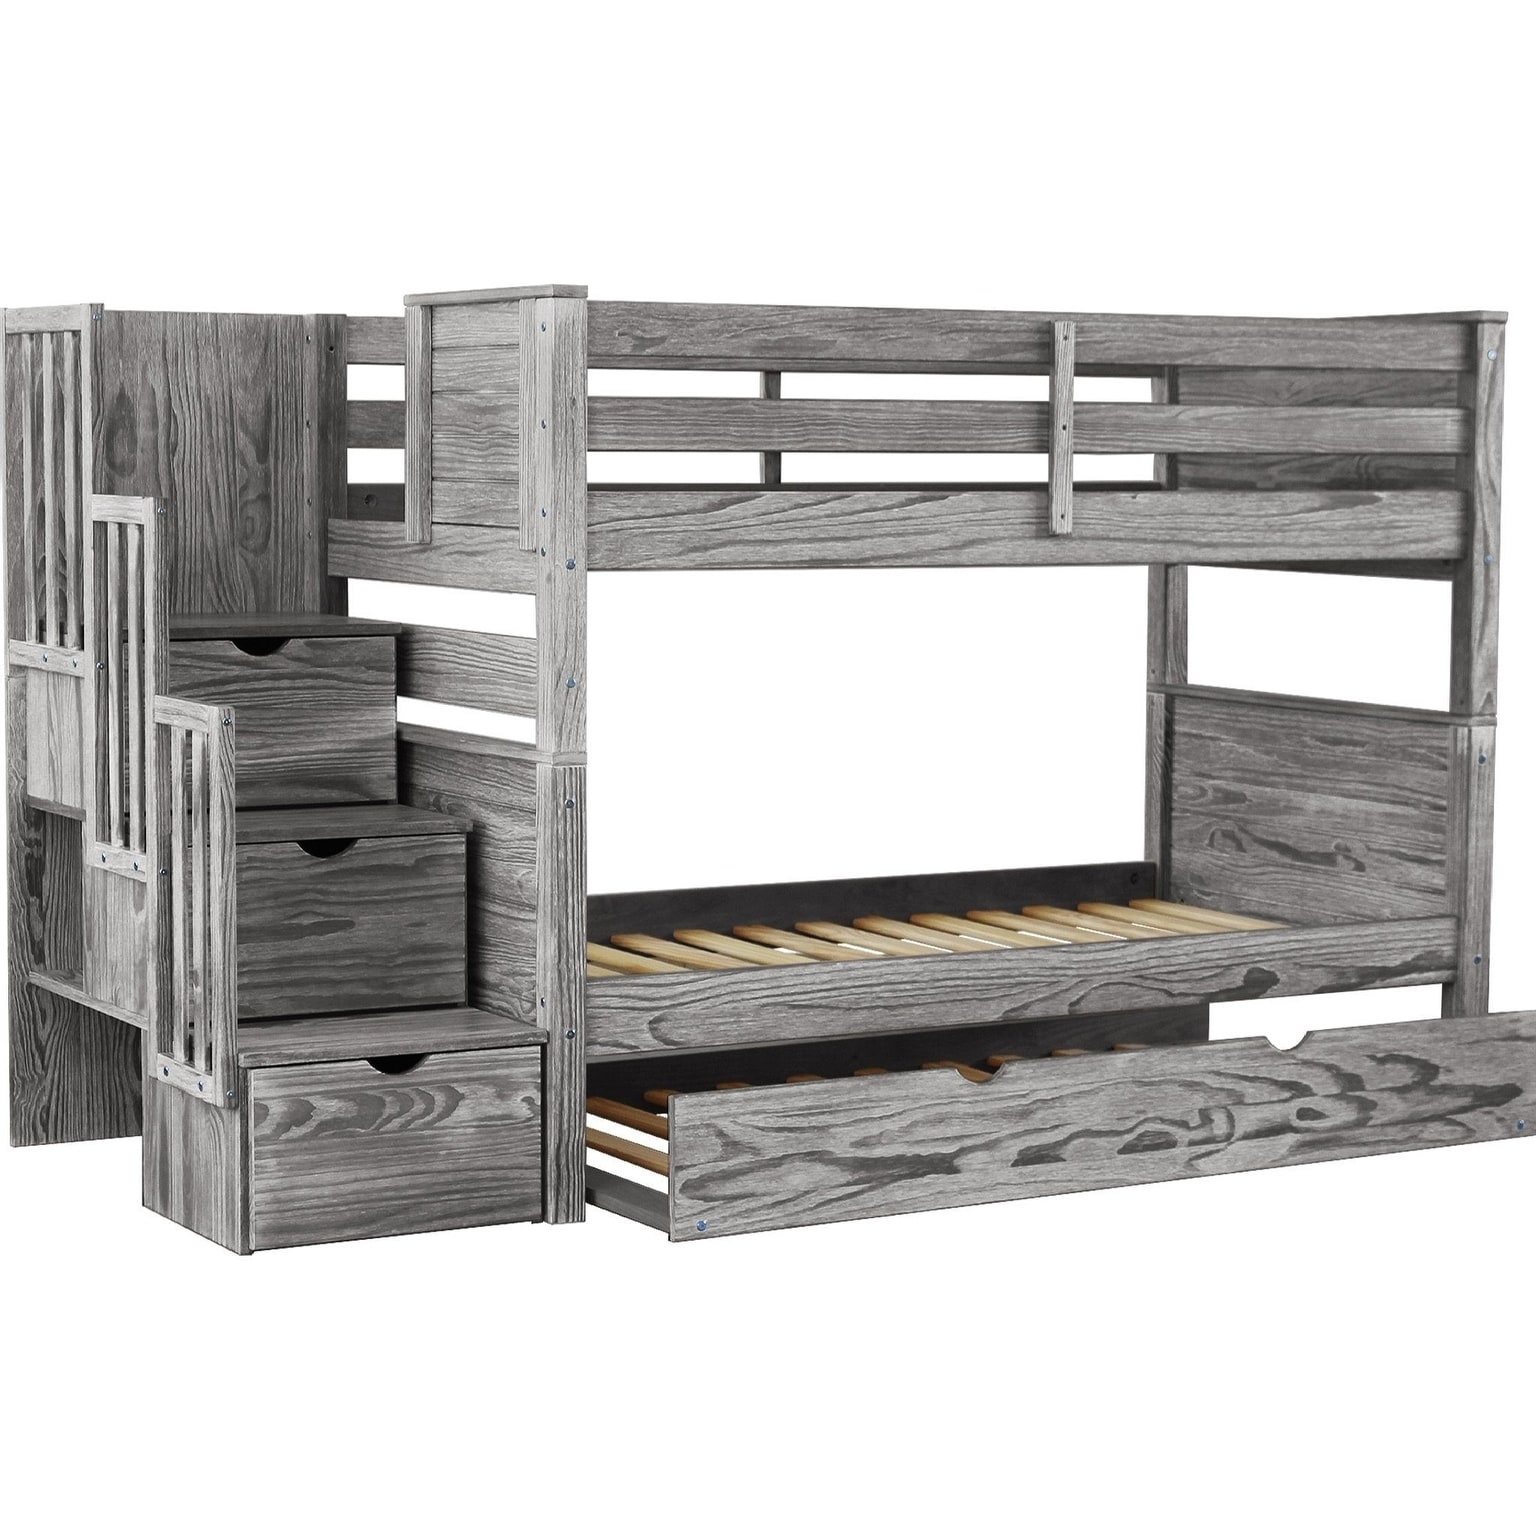 Picture of: Bedz King Stairway Bunk Beds Twin Over Twin With 3 Drawers In The Steps And A Twin Trundle Rustic Gray Overstock 25572341